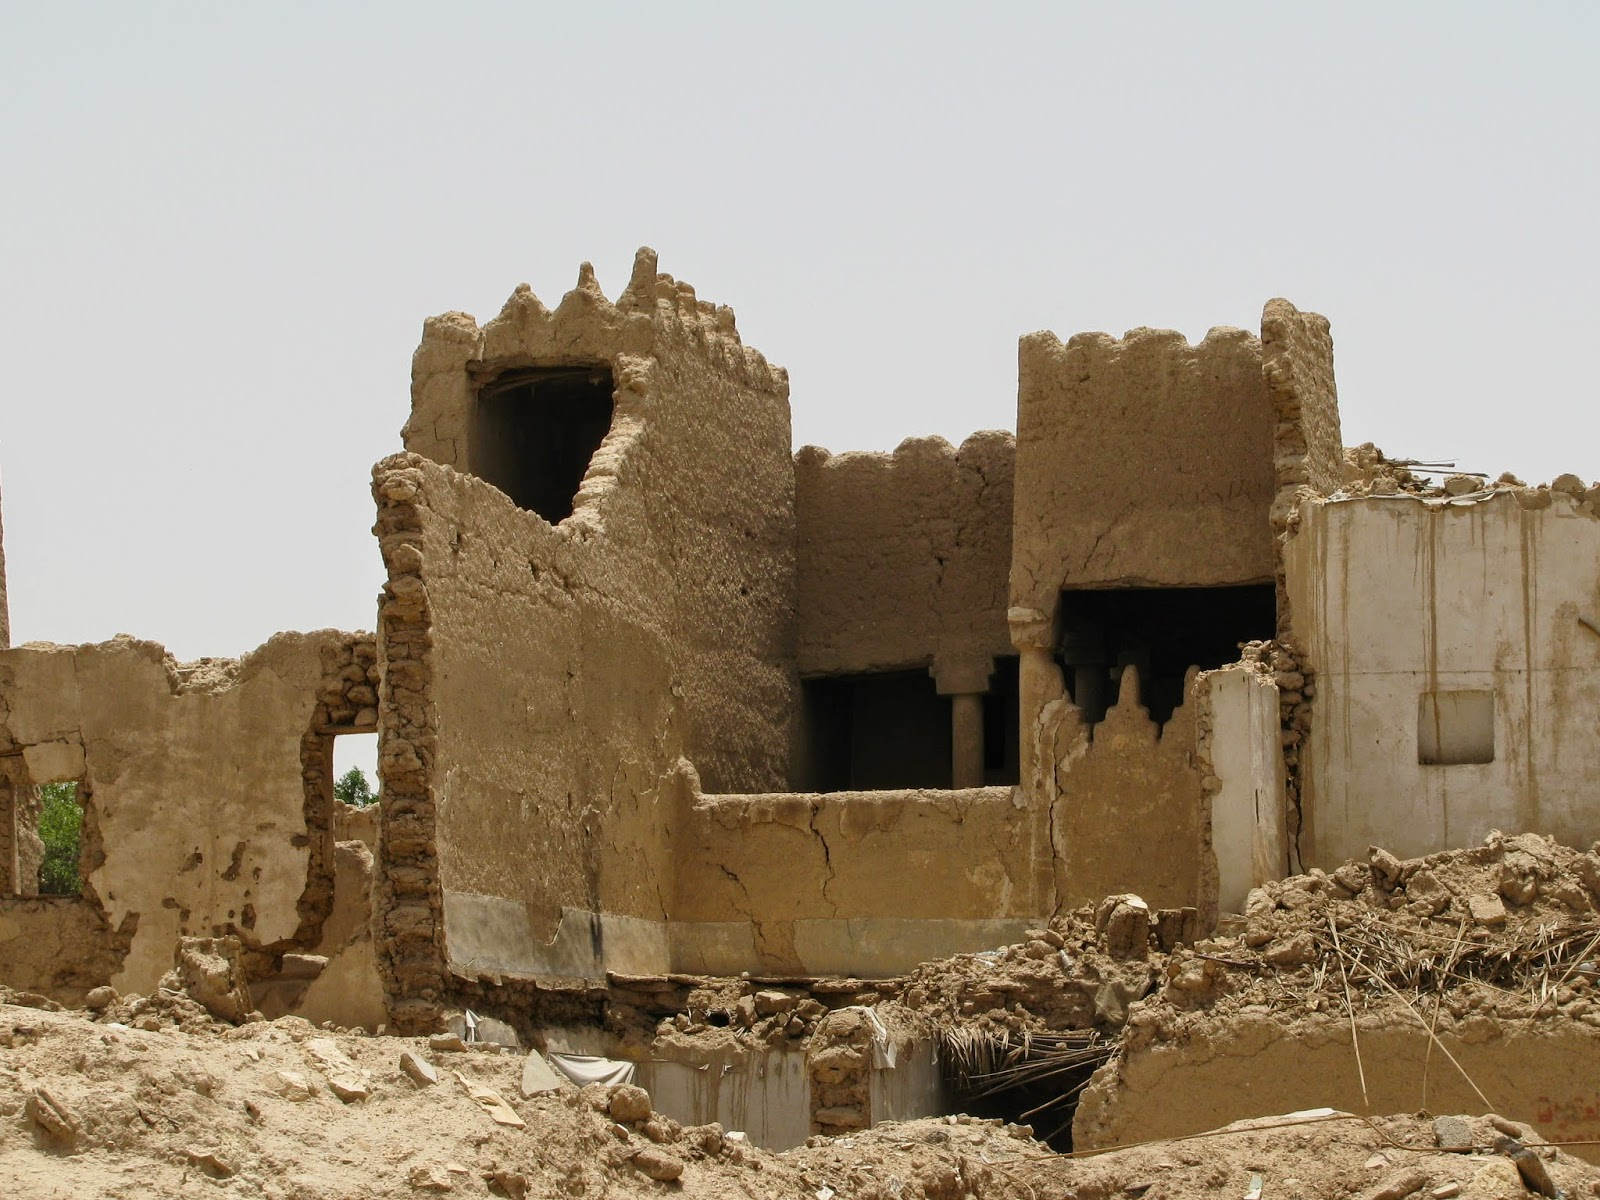 Saudi Arabia The Mud Houses Of Old Riyadh Minor Sights